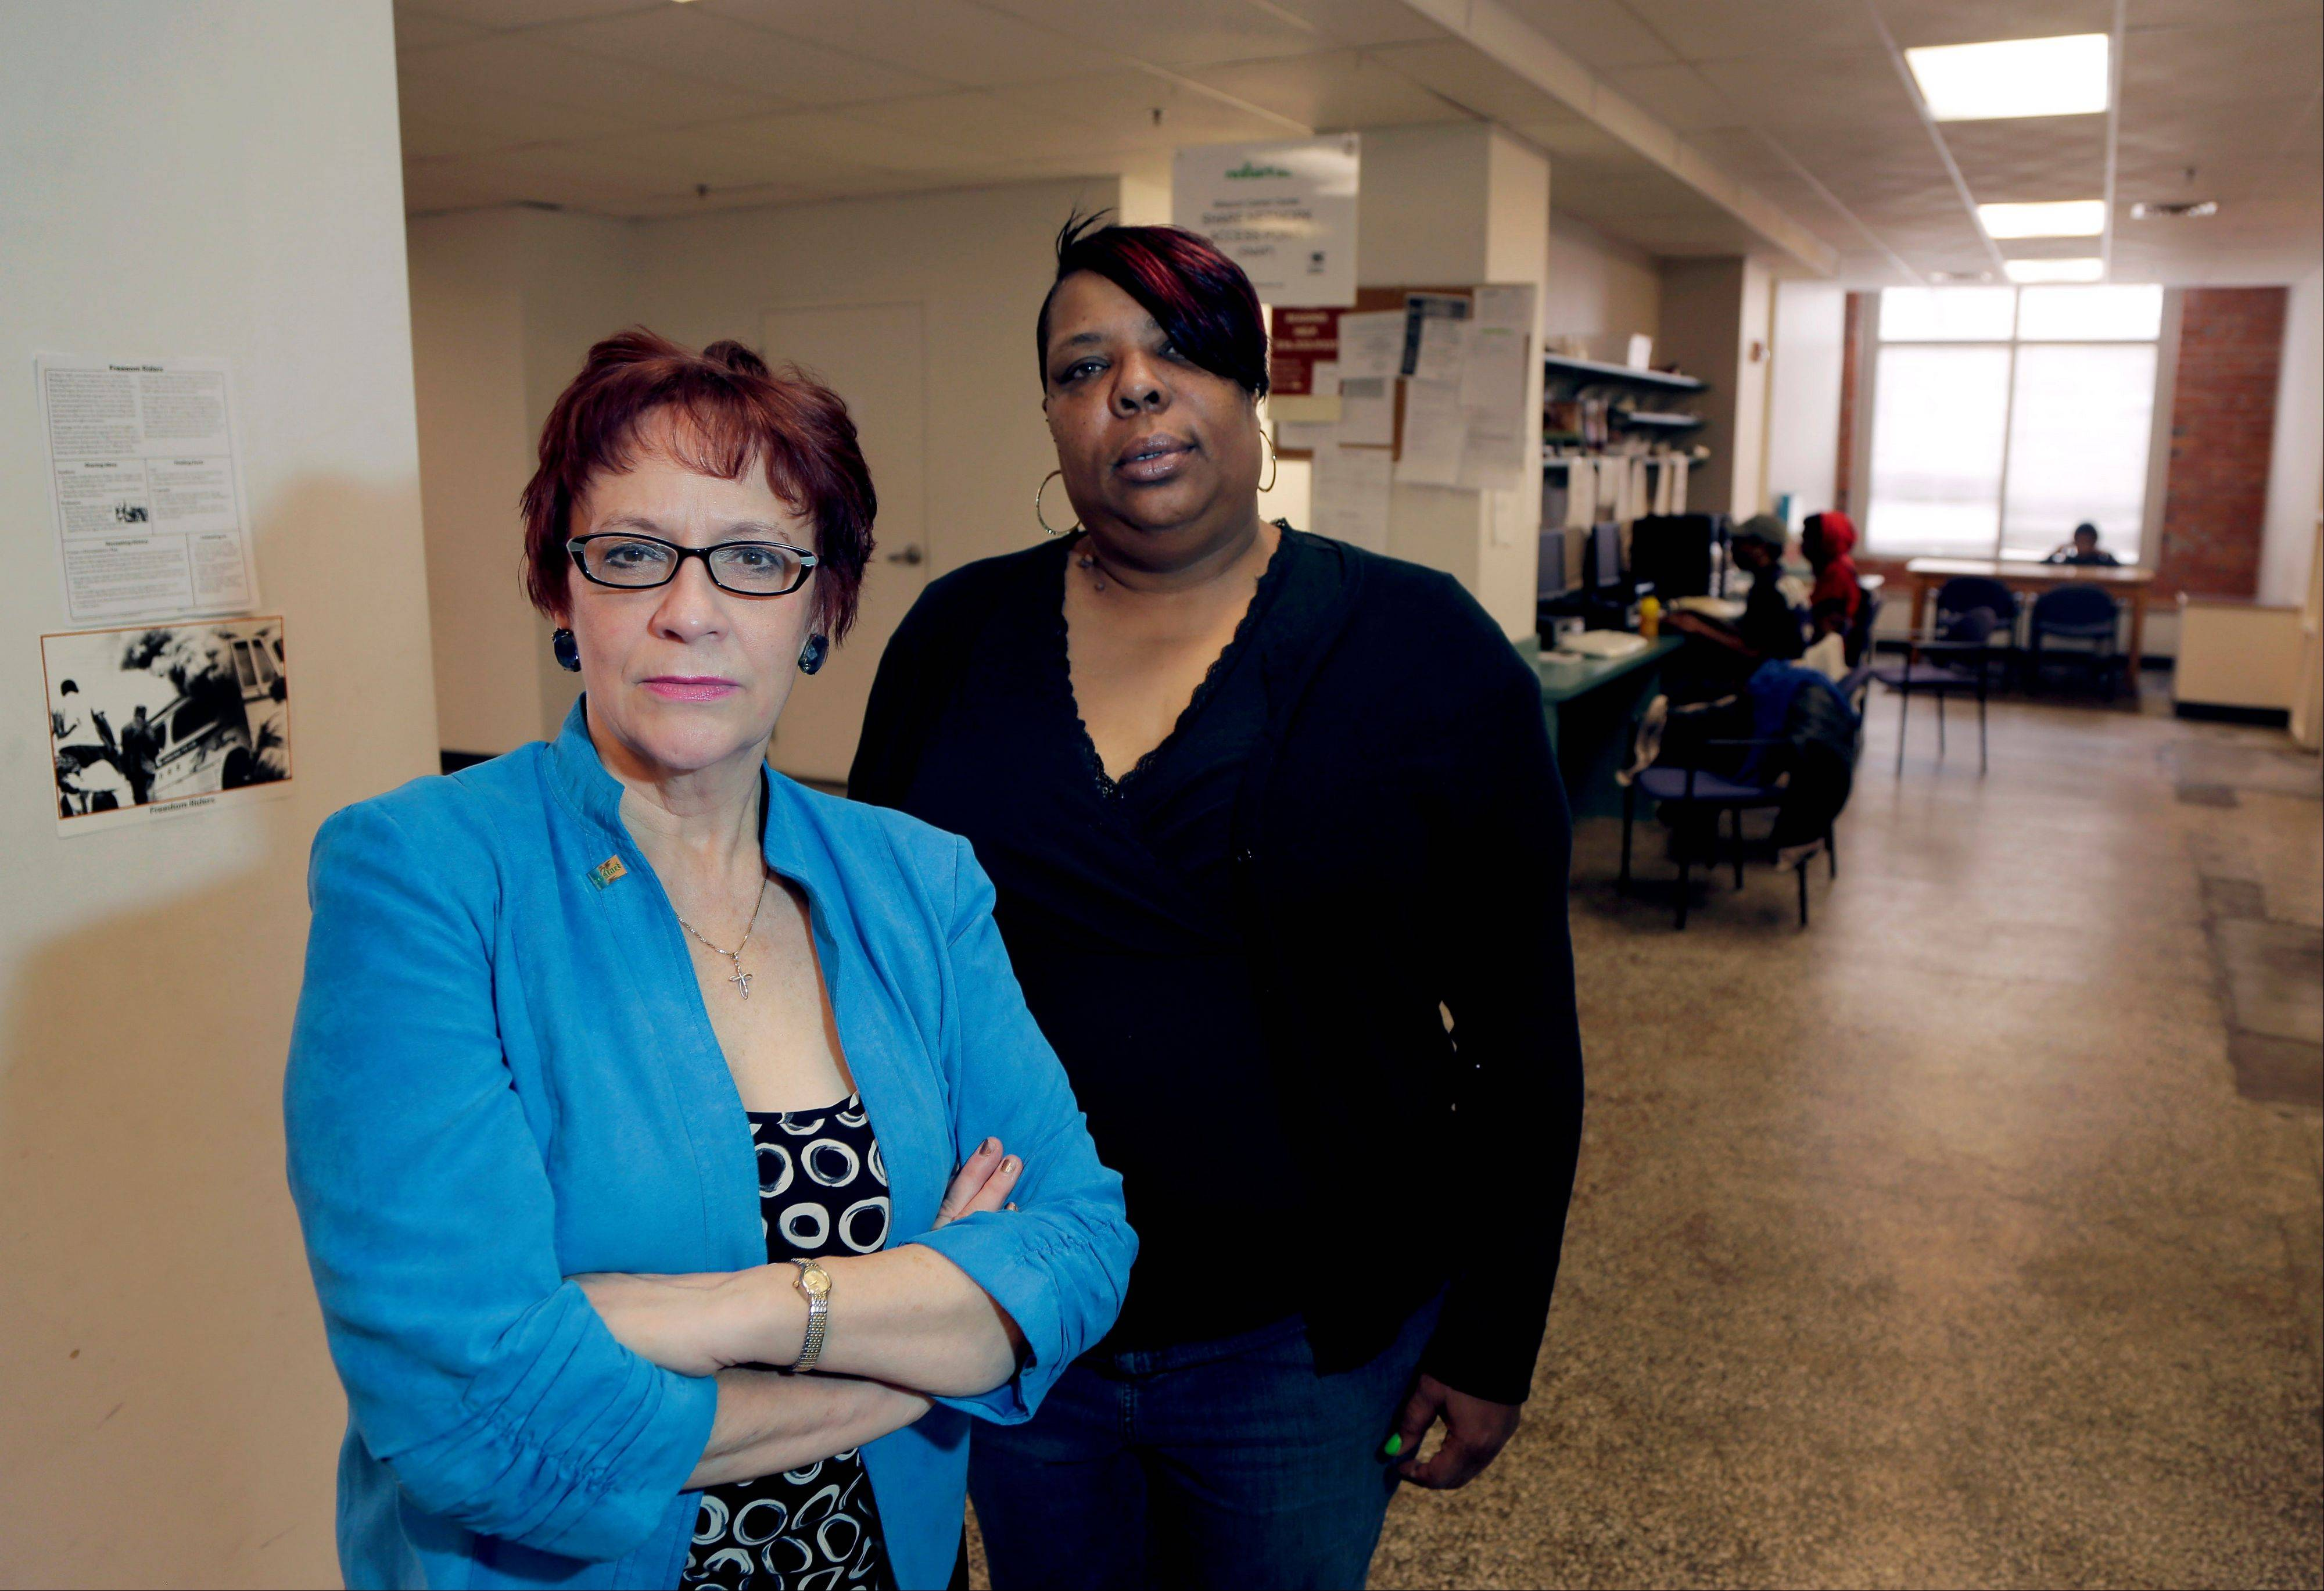 Evelyn Craig, left, executive director of reStart Inc., and LaTonya Jenkins, a reStart client who lives at the facility, pose at the homeless shelter in Kansas City, Mo. The women are concerned that Missouri�s refusal to expand Medicaid under the Affordable Care Act will harm residents of the shelter like Jenkins.